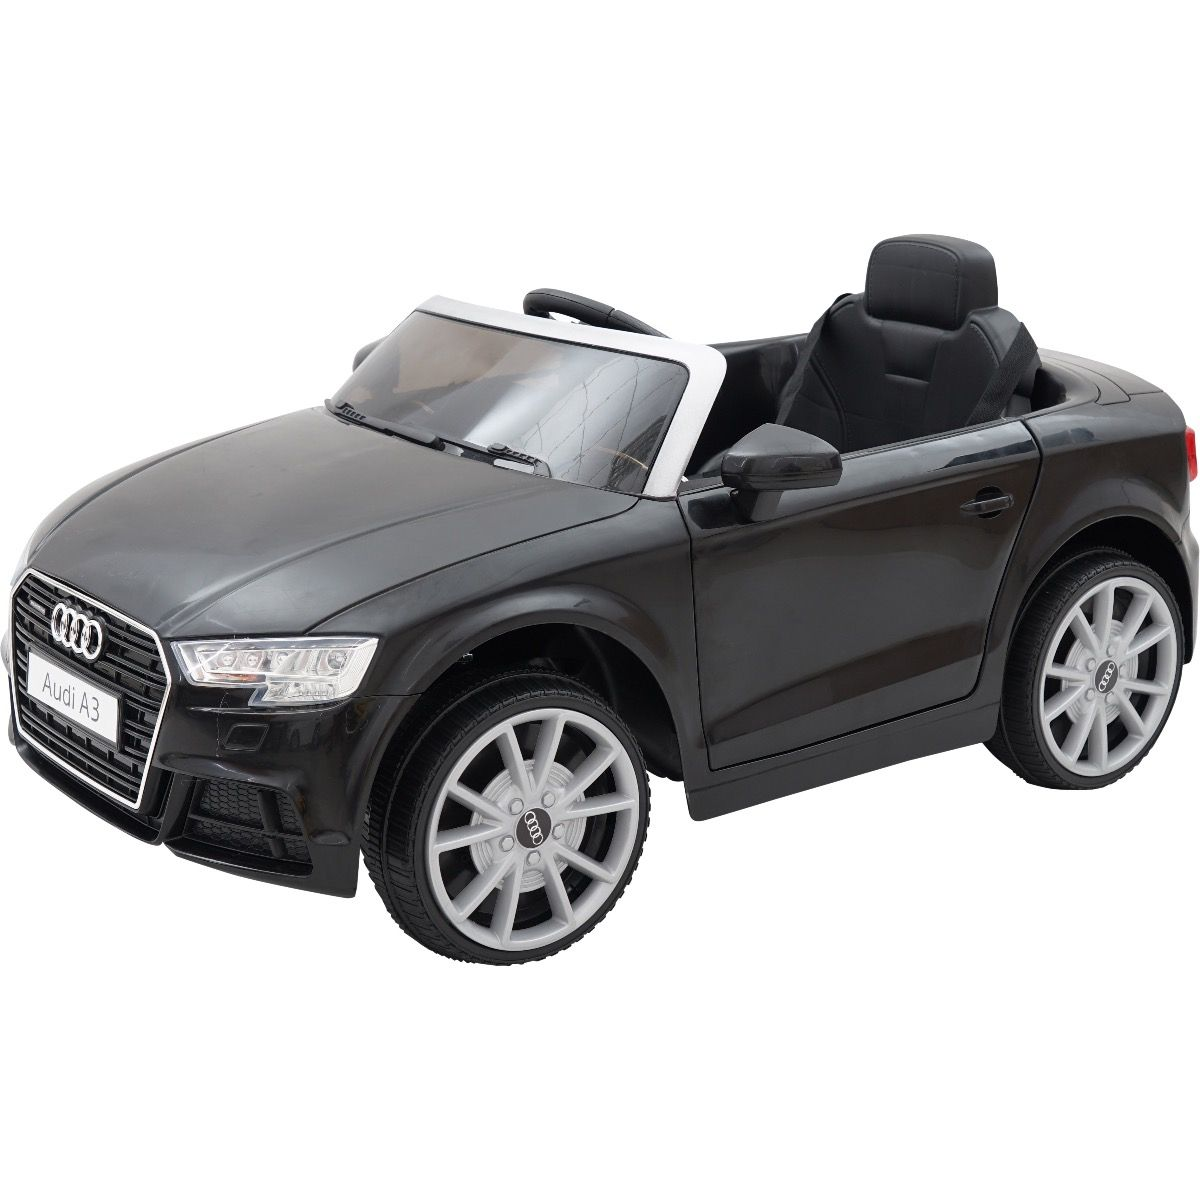 76a5b9a97694 Licensed Audi A3 12V Battery Operated Children's Ride On Car - Black For  Just £109.95 | Outdoor Toys